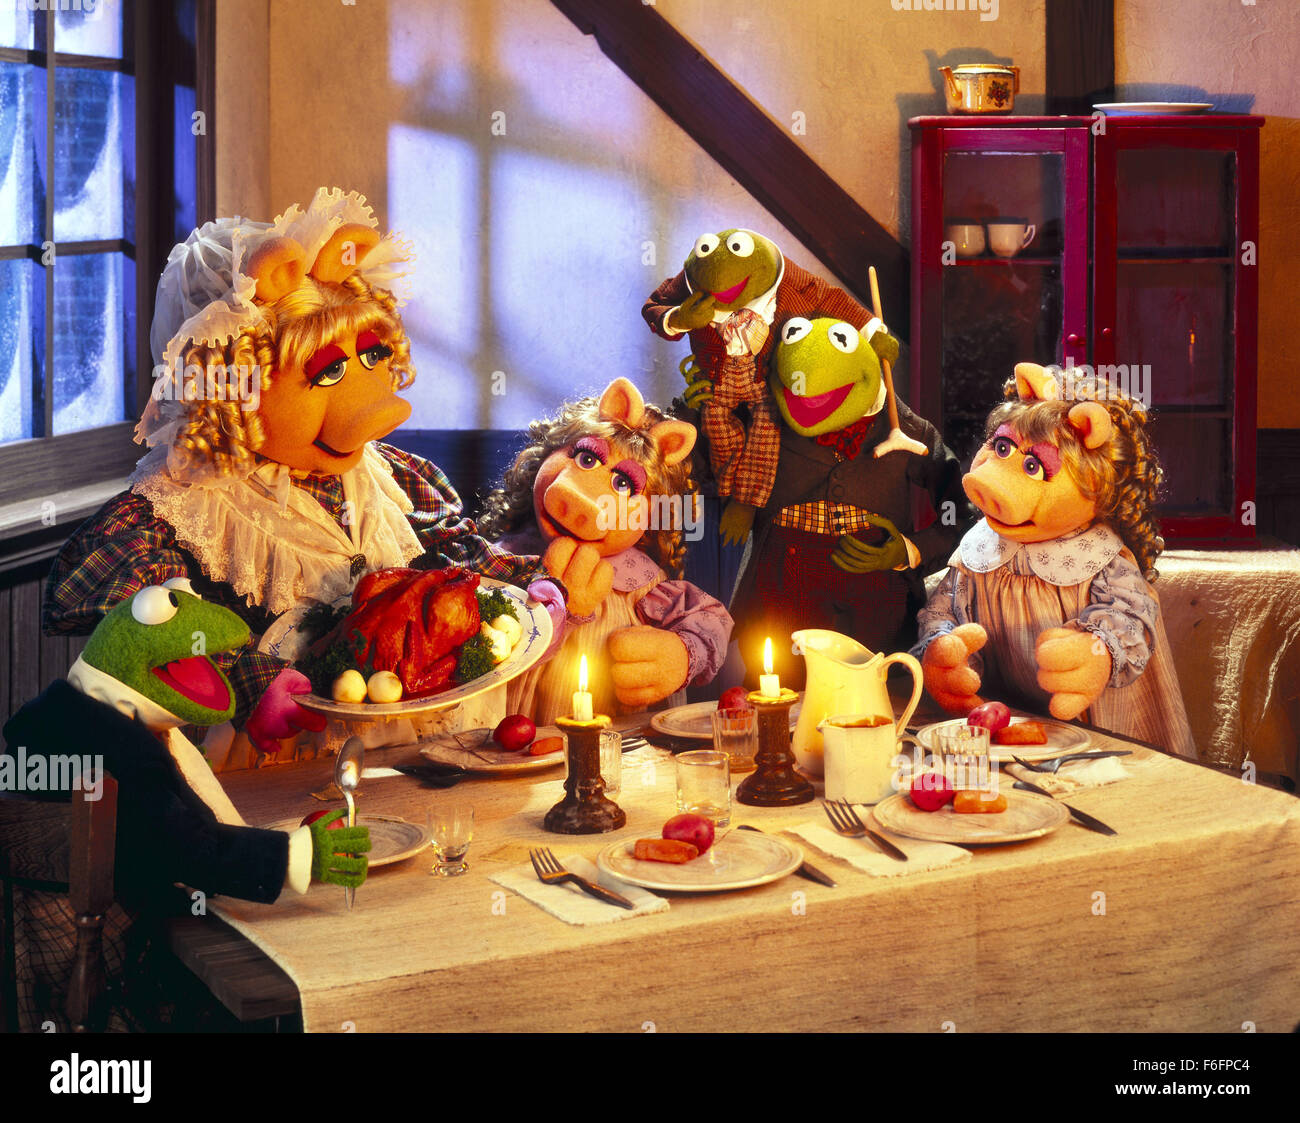 Muppets Christmas Carol.The Muppet Christmas Carol Stock Photos The Muppet